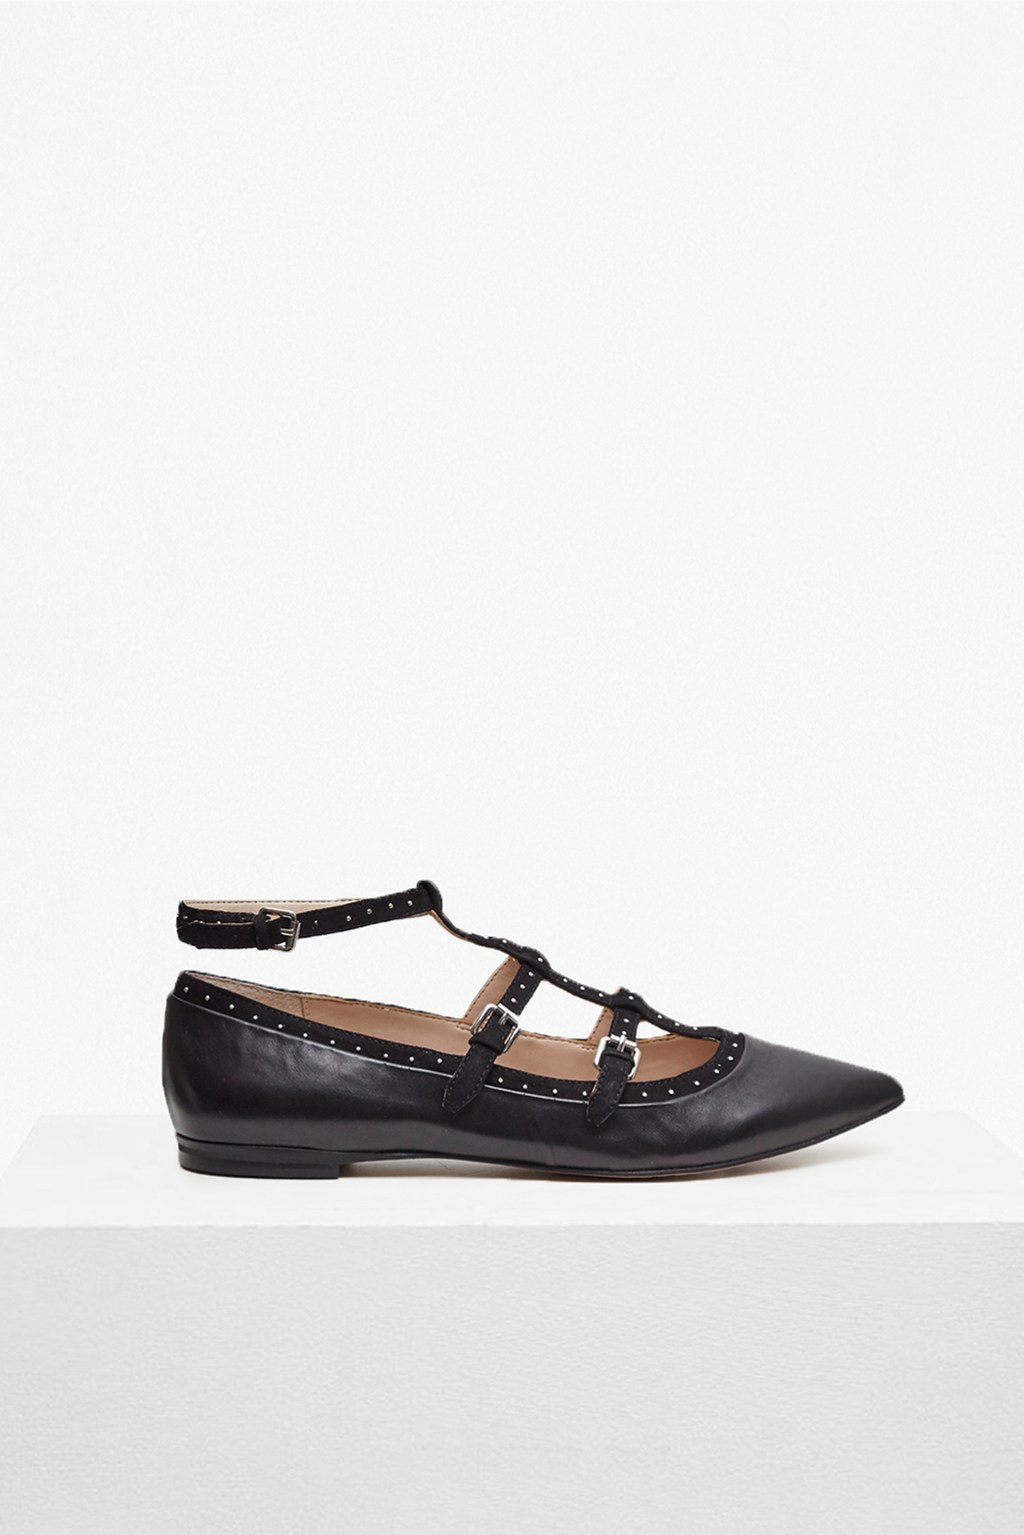 Geklin Pointed Strappy Flats Black/Black - predominant colour: black; occasions: casual; material: leather; heel height: flat; ankle detail: ankle strap; toe: pointed toe; style: ballerinas / pumps; finish: plain; pattern: plain; wardrobe: basic; season: a/w 2016